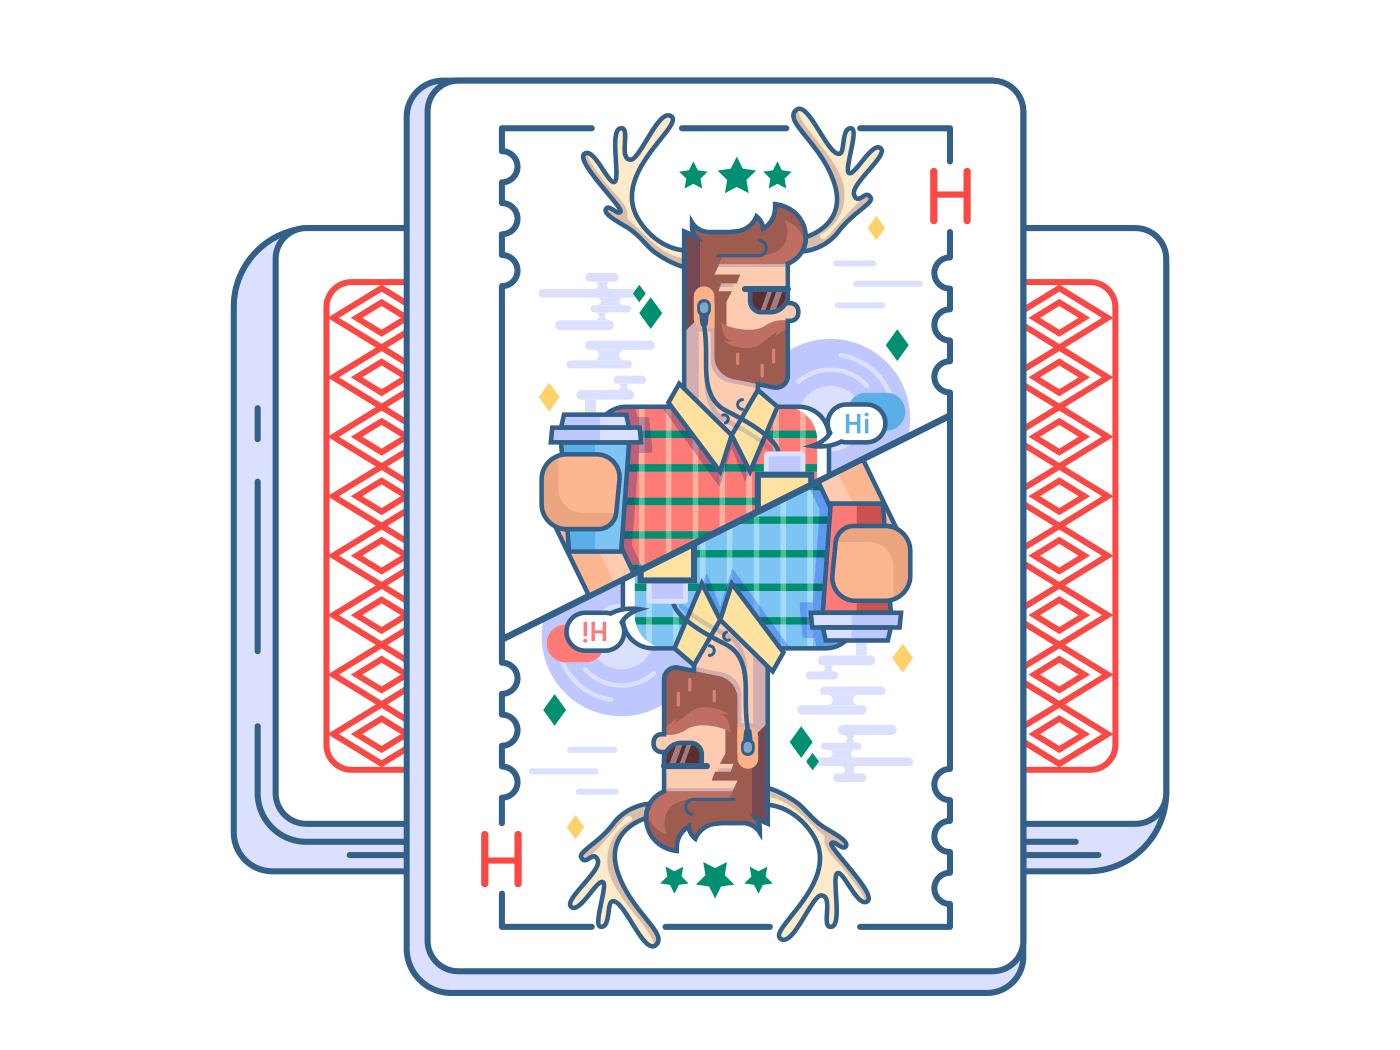 Hipster on playing card vector illustration